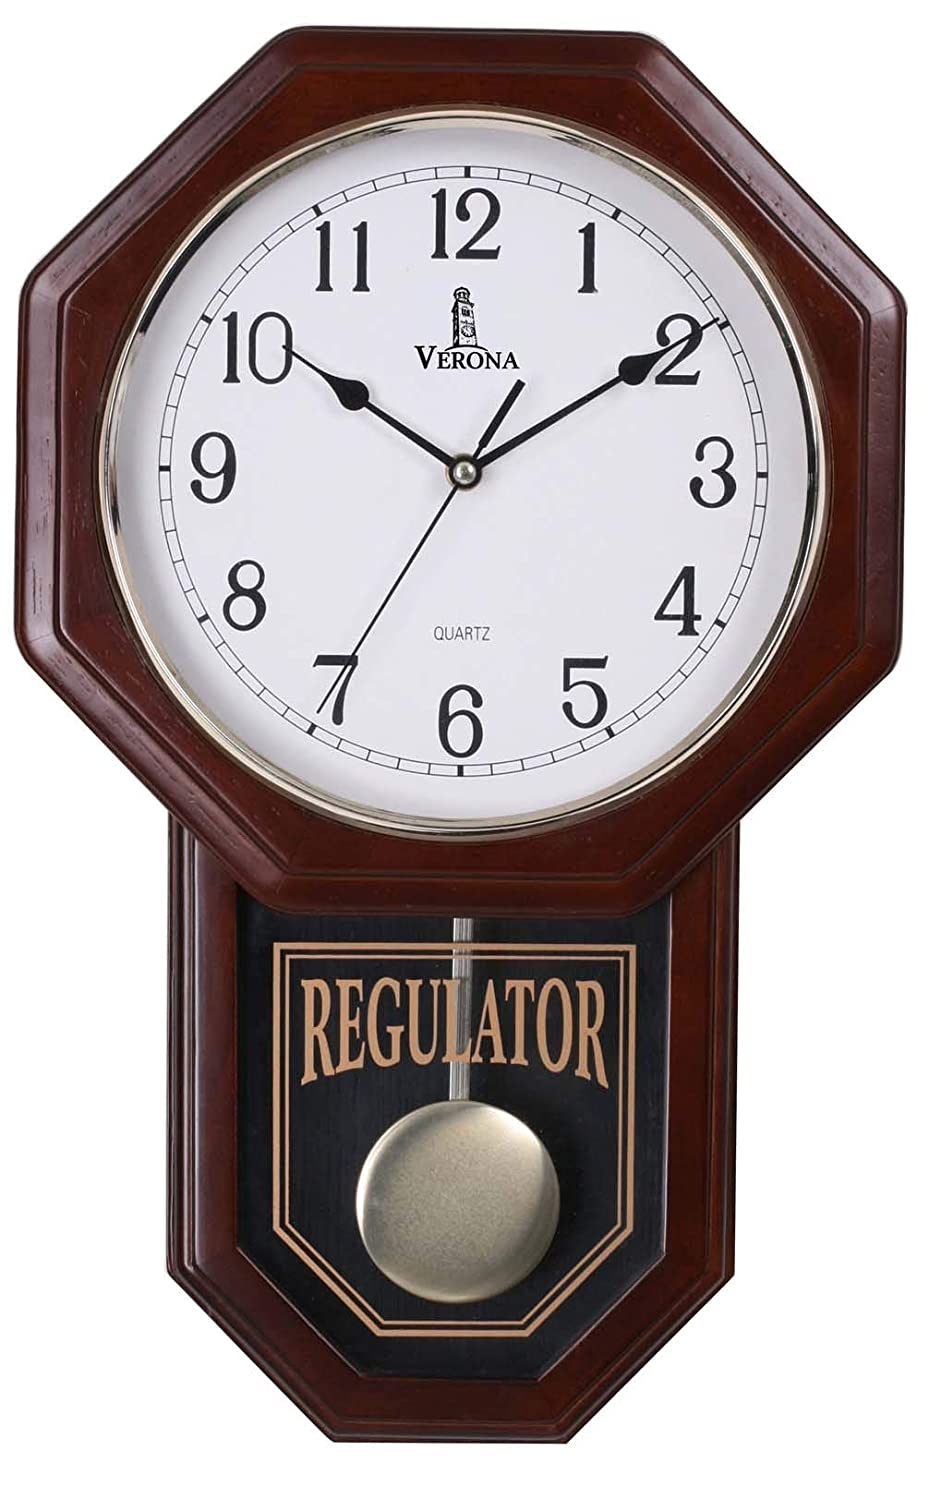 "Best Pendulum Wall Clock, Silent Decorative Wood Clock with Swinging Pendulum, Battery Operated, Schoolhouse Regulator Wooden Design, For Living Room, Bathroom, Kitchen & Home Décor, 18"" x 11.25"""